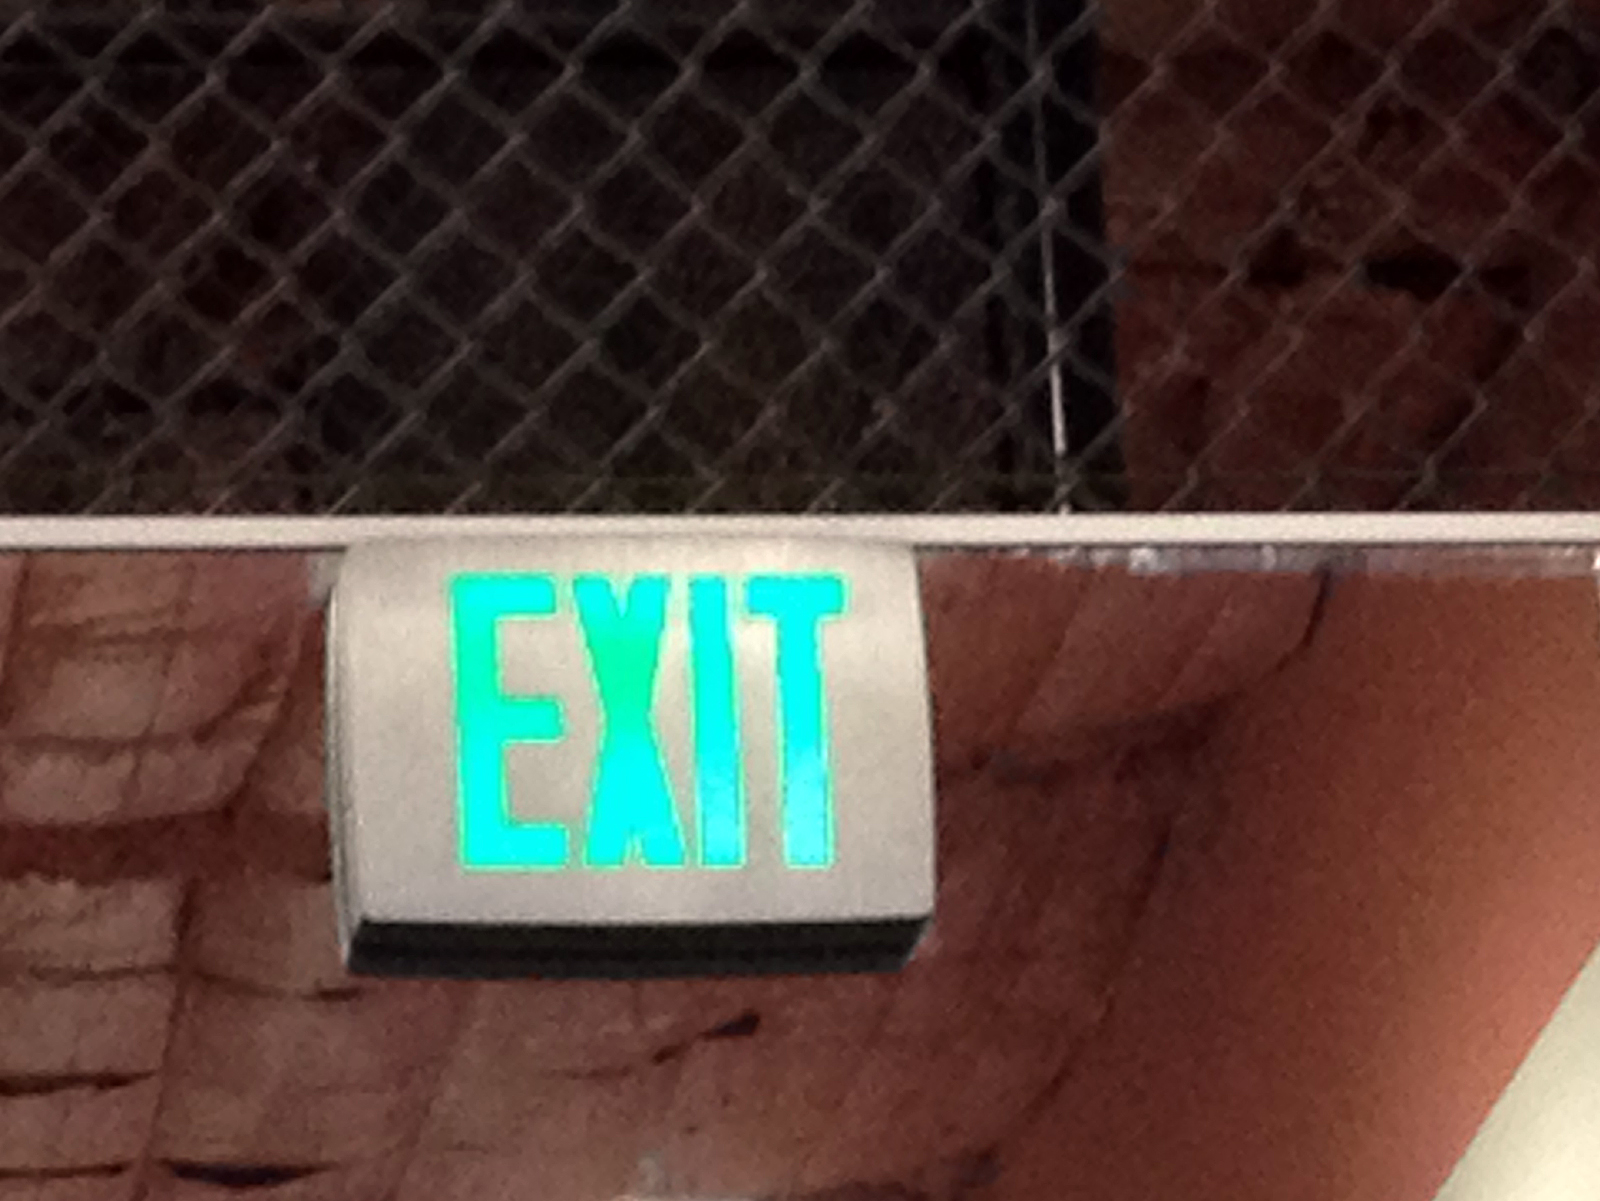 File Photo: The exit sign at 24 Hour Fitness at 16th and Bryant streets.